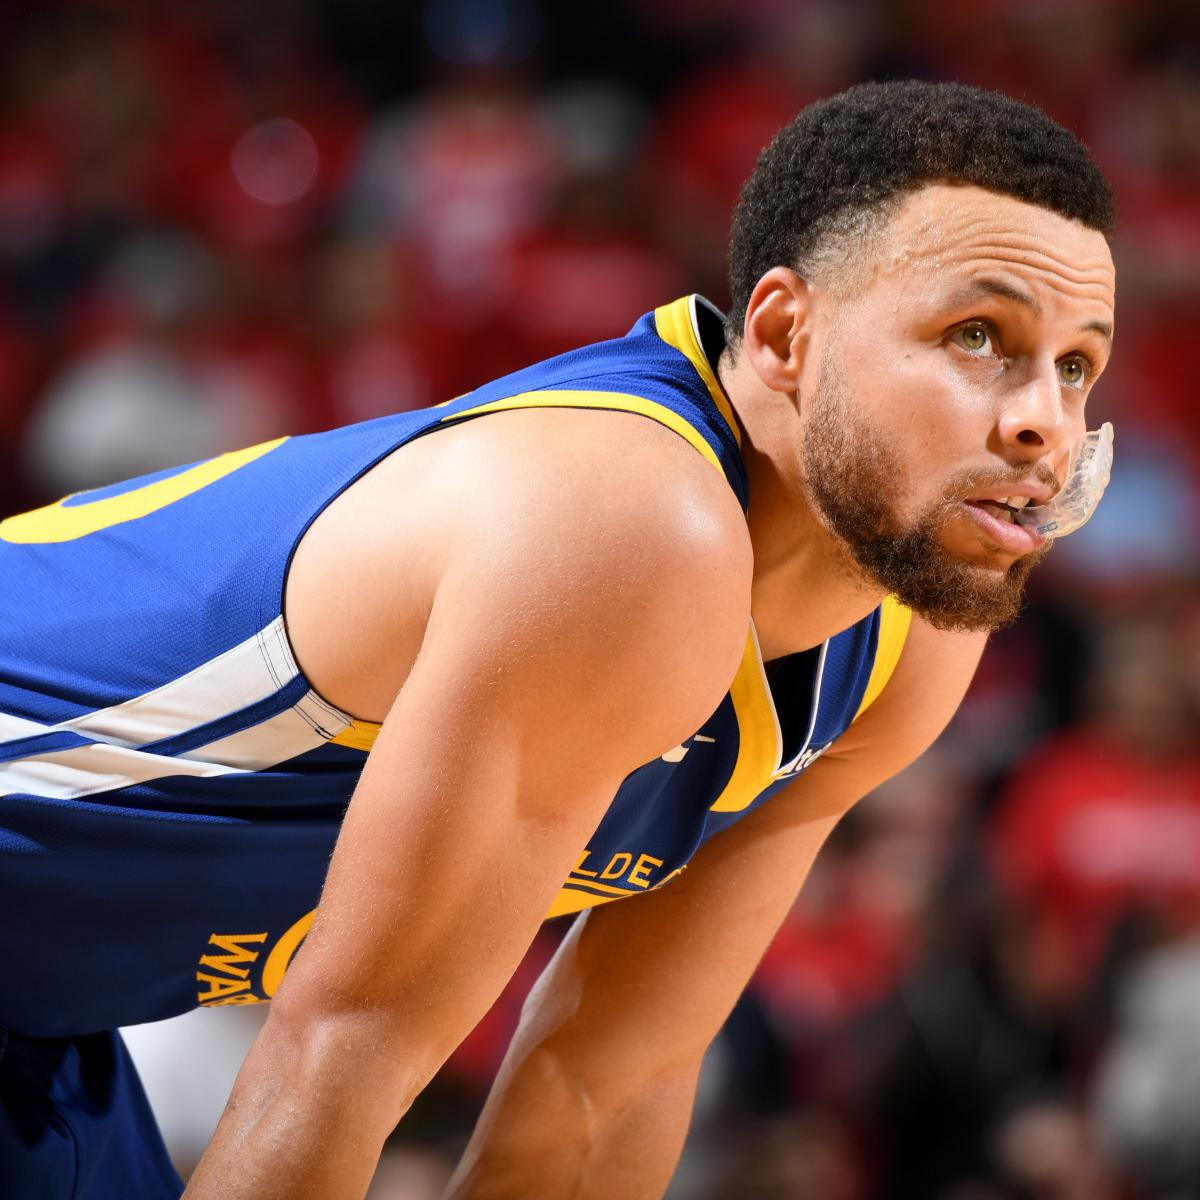 Stephen Curry is averaging 18.3 points per game in the Golden State Warriors ' Western Conference Semifinals matchup against the Houston Rockets , shooting just 36.5 percent from the field and 25..